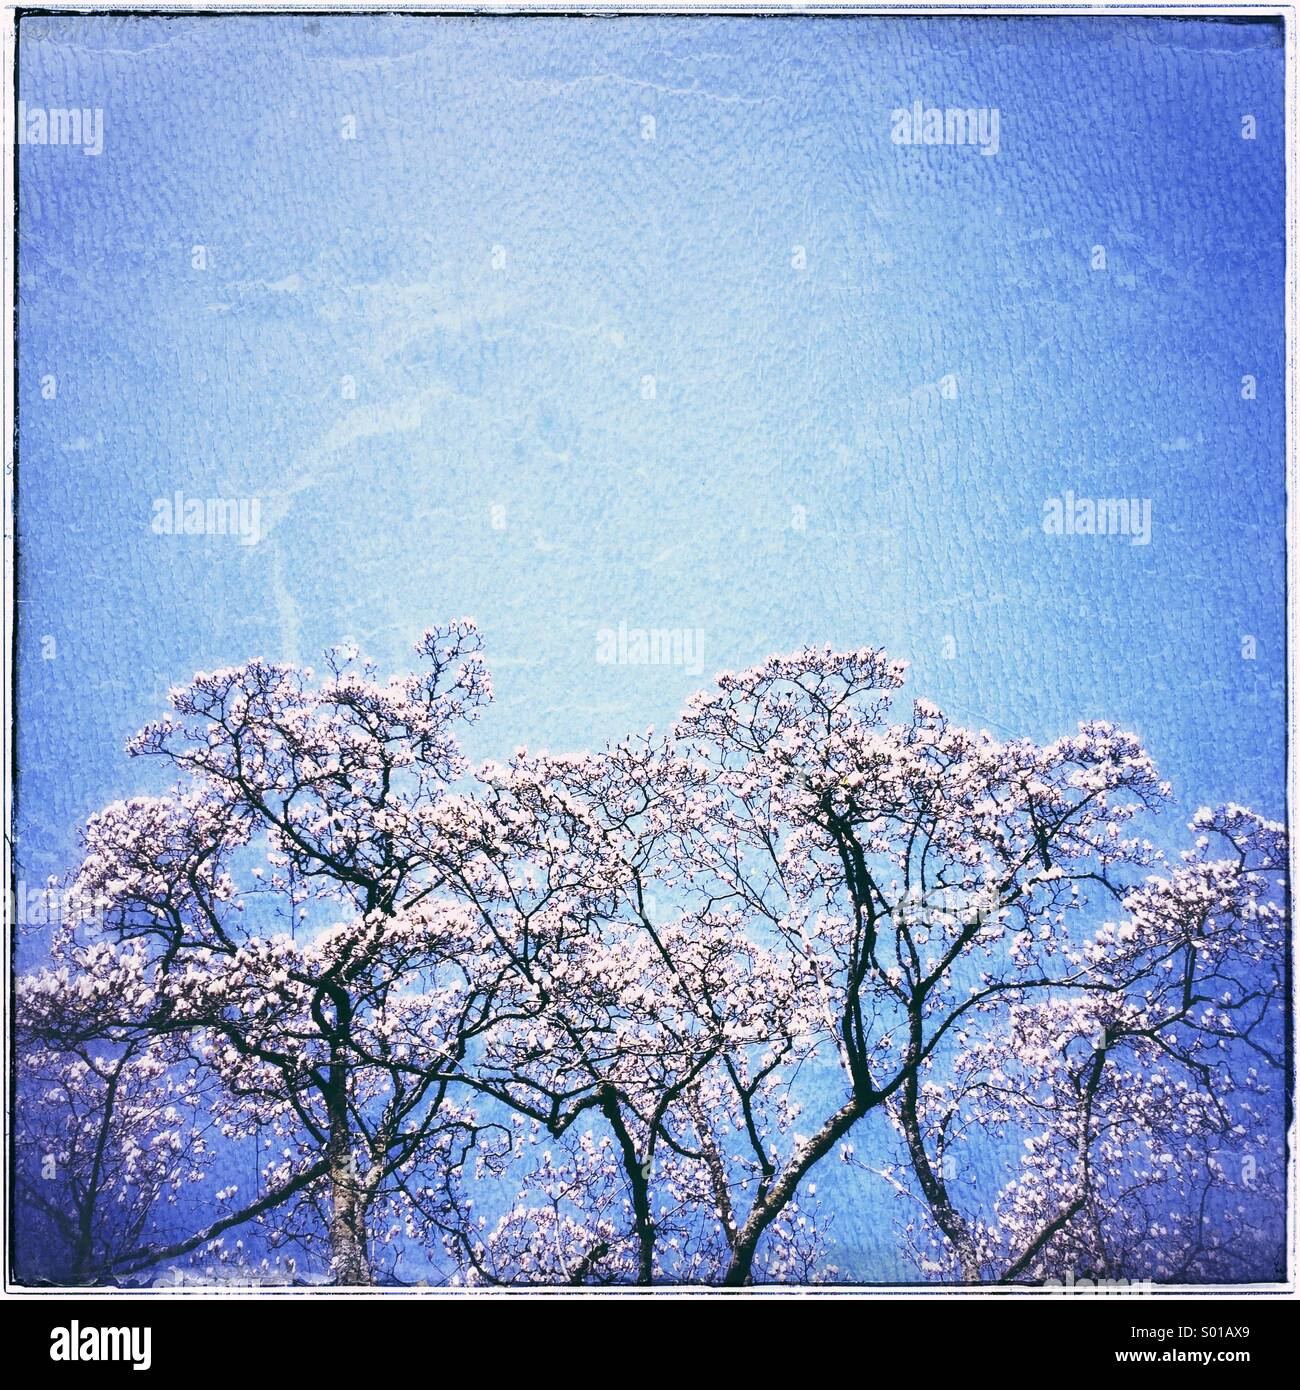 Tree blossom against blue sky - Stock Image